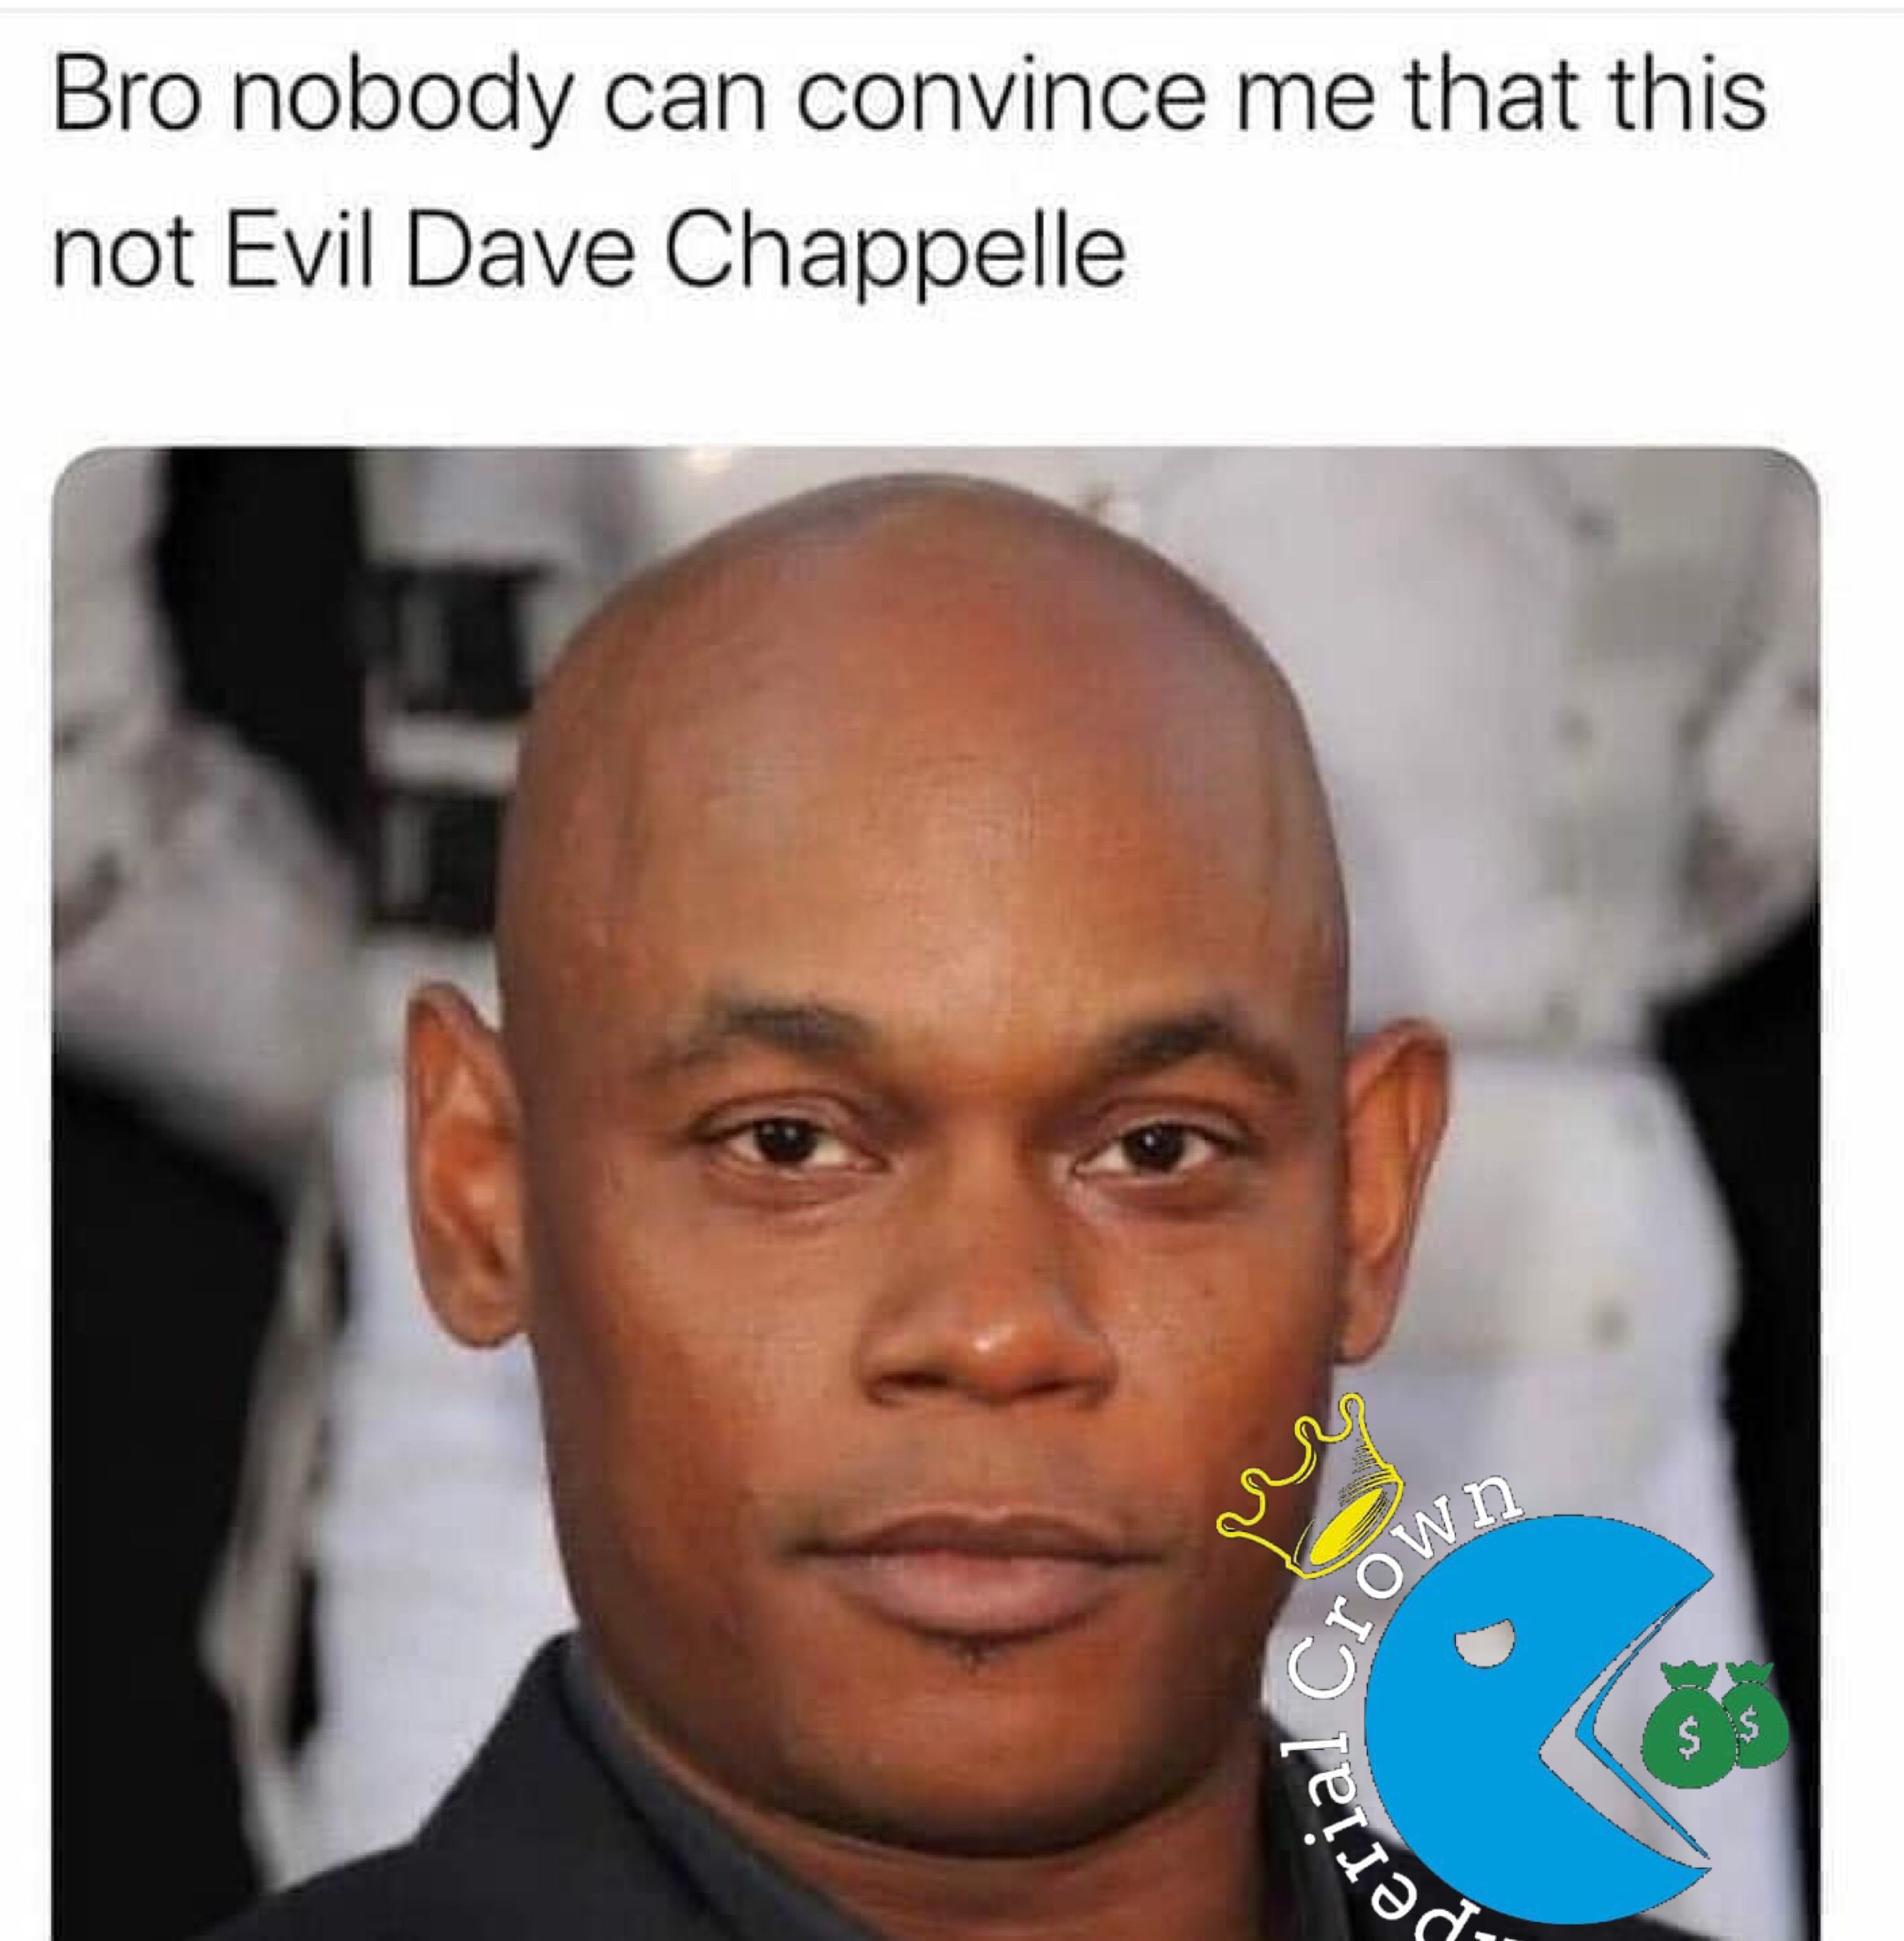 Bro nobody can convince me that this not evil Dave Chappell